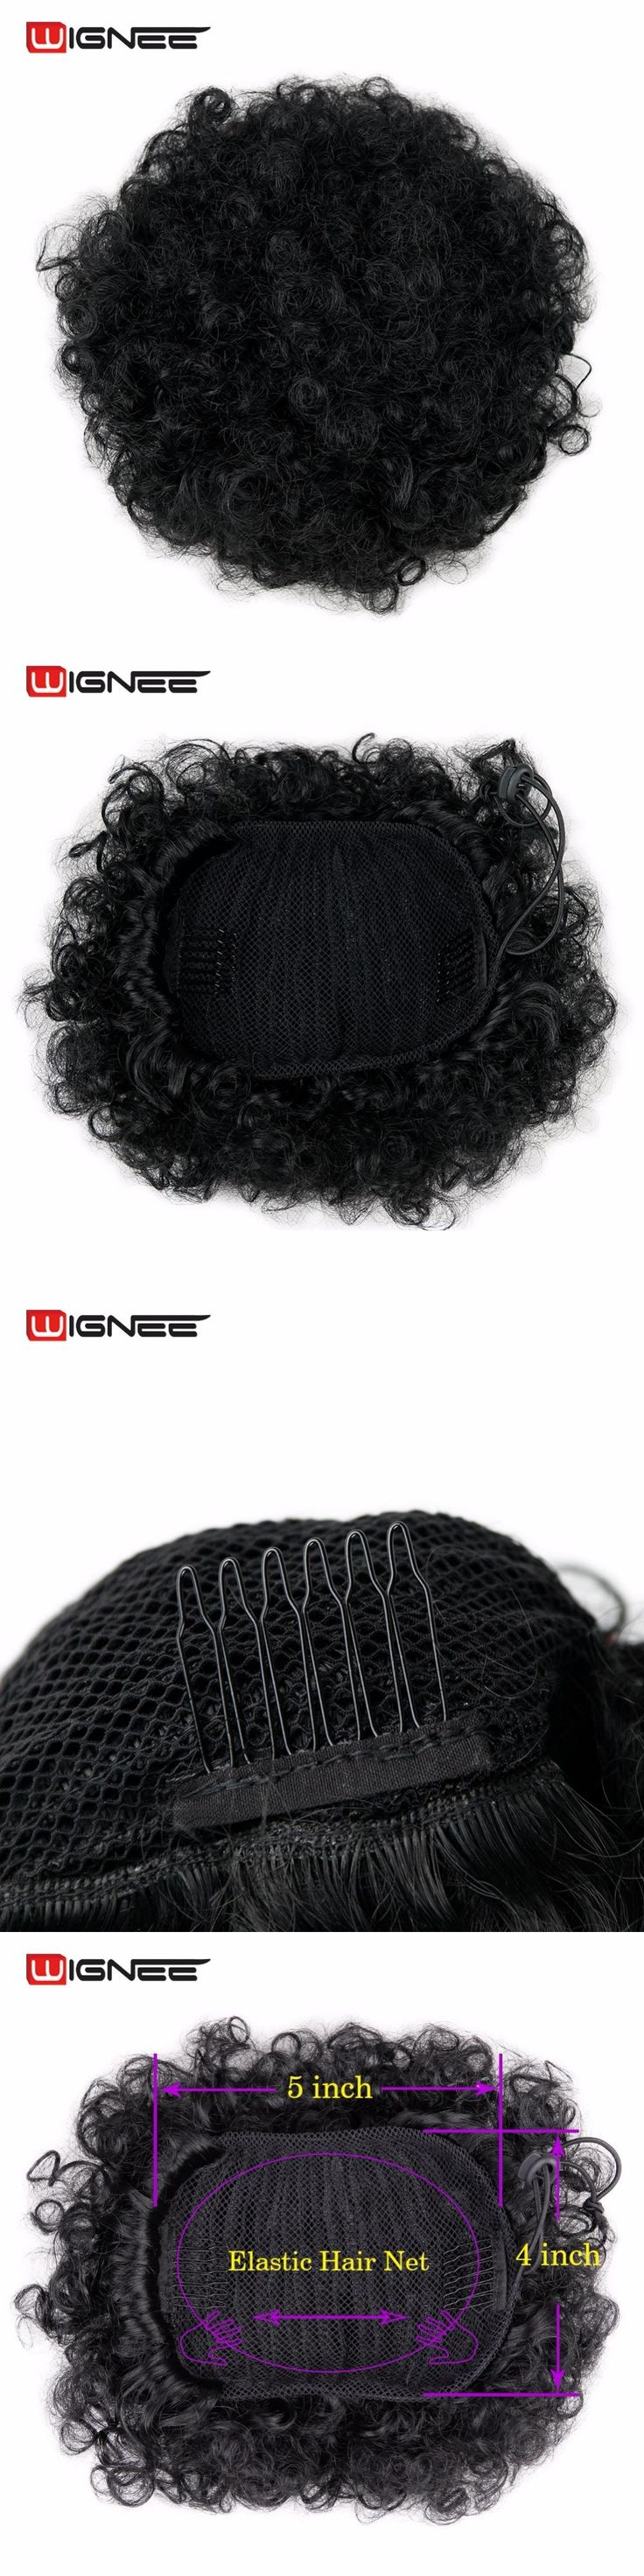 Wignee Curly Chignon Bun Clip-In False Trendy Hair Extension For Black/White Women High Density Temperature Synthetic Hairstyles